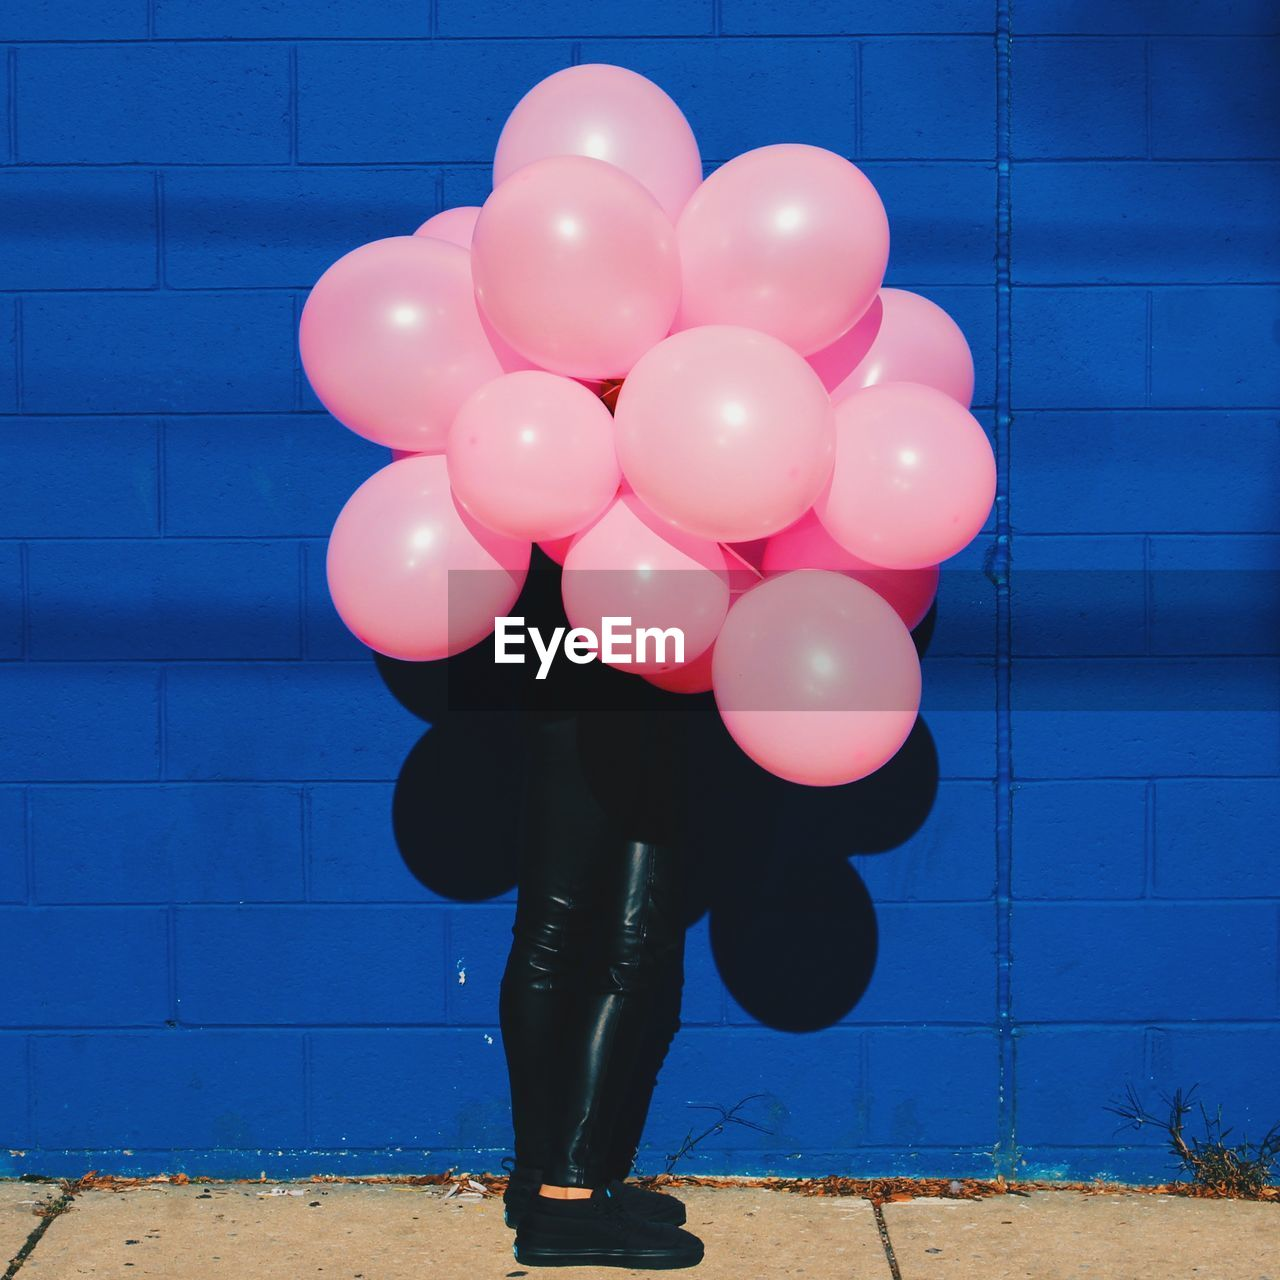 Person holding pink balloons in front of face